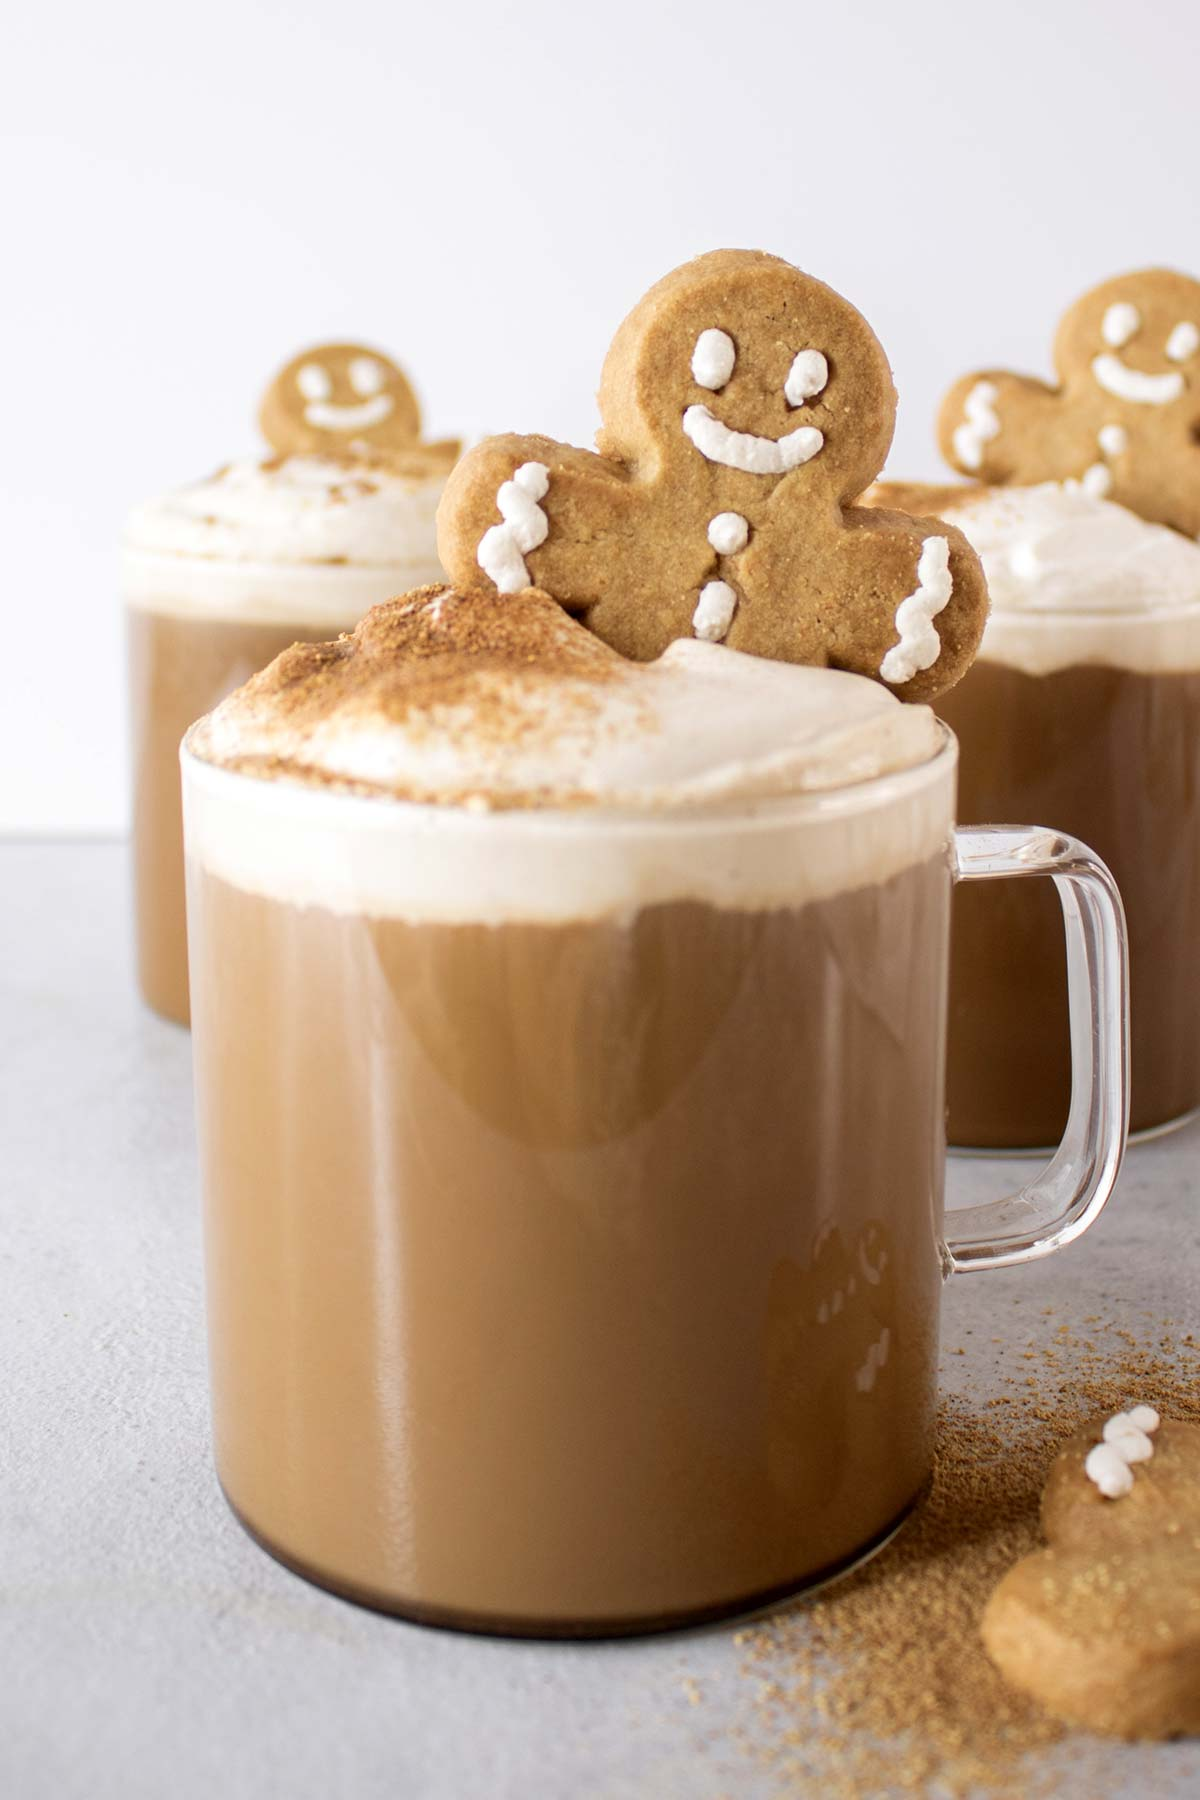 Gingberbread lattes topped with whipped cream and gingerbread man cookie.